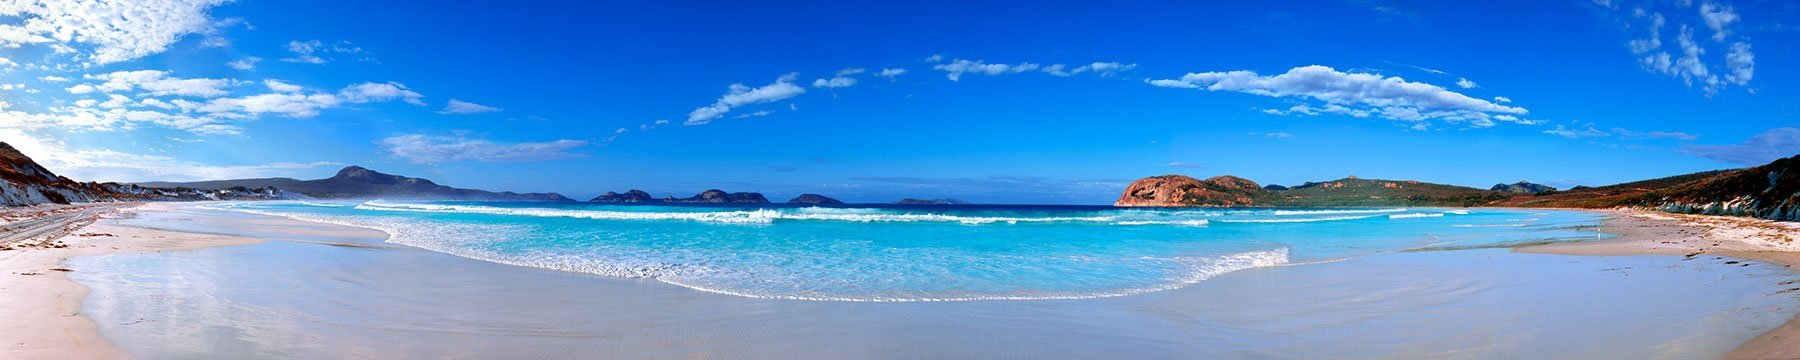 Gentle waves under a bright blue sky lap the shores of Cape Le Grand National Park, Western Australia.